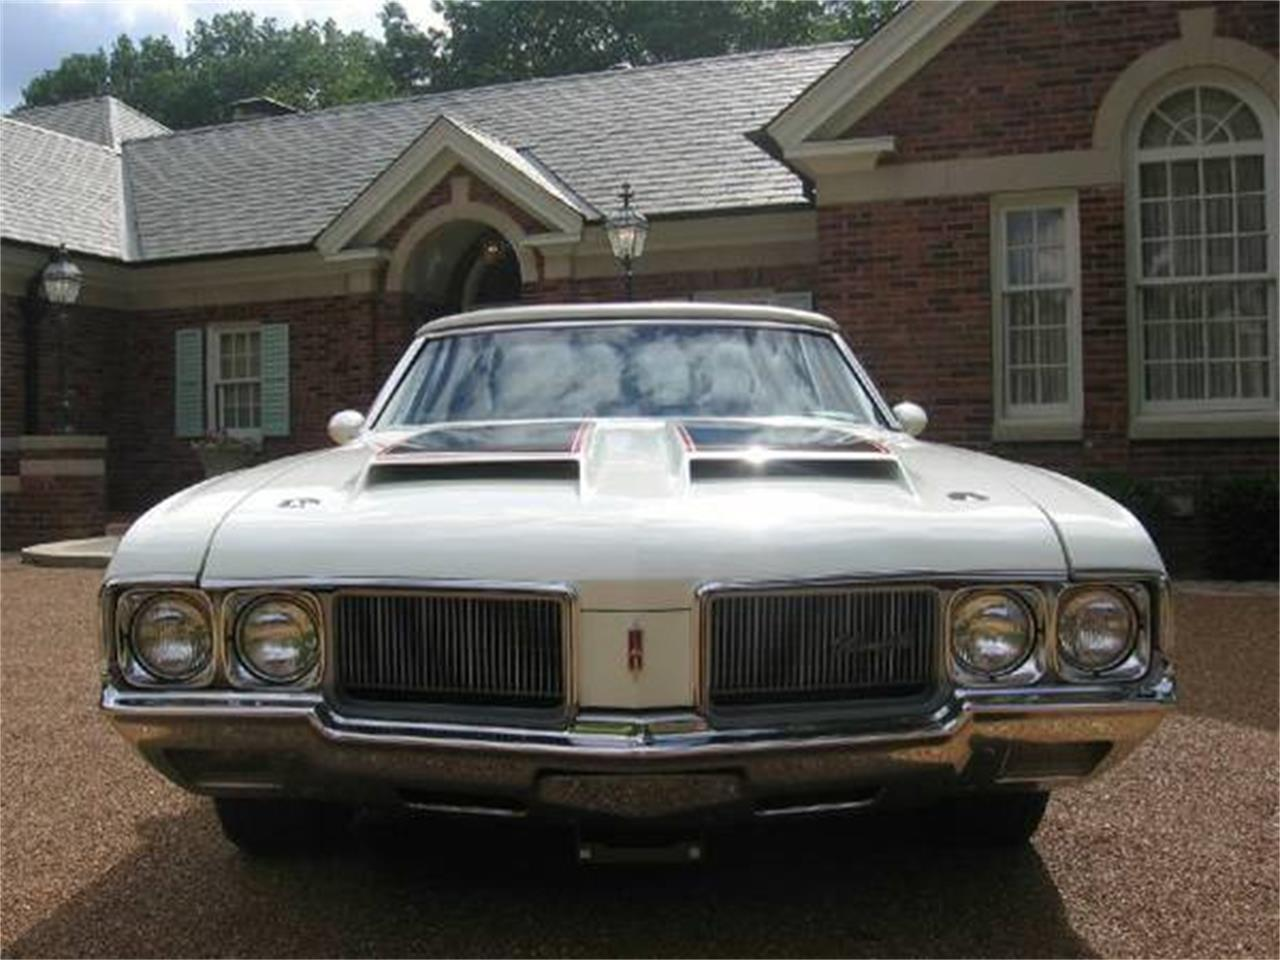 Large Picture of '70 Oldsmobile Cutlass Supreme located in Missouri Offered by a Private Seller - E0YT